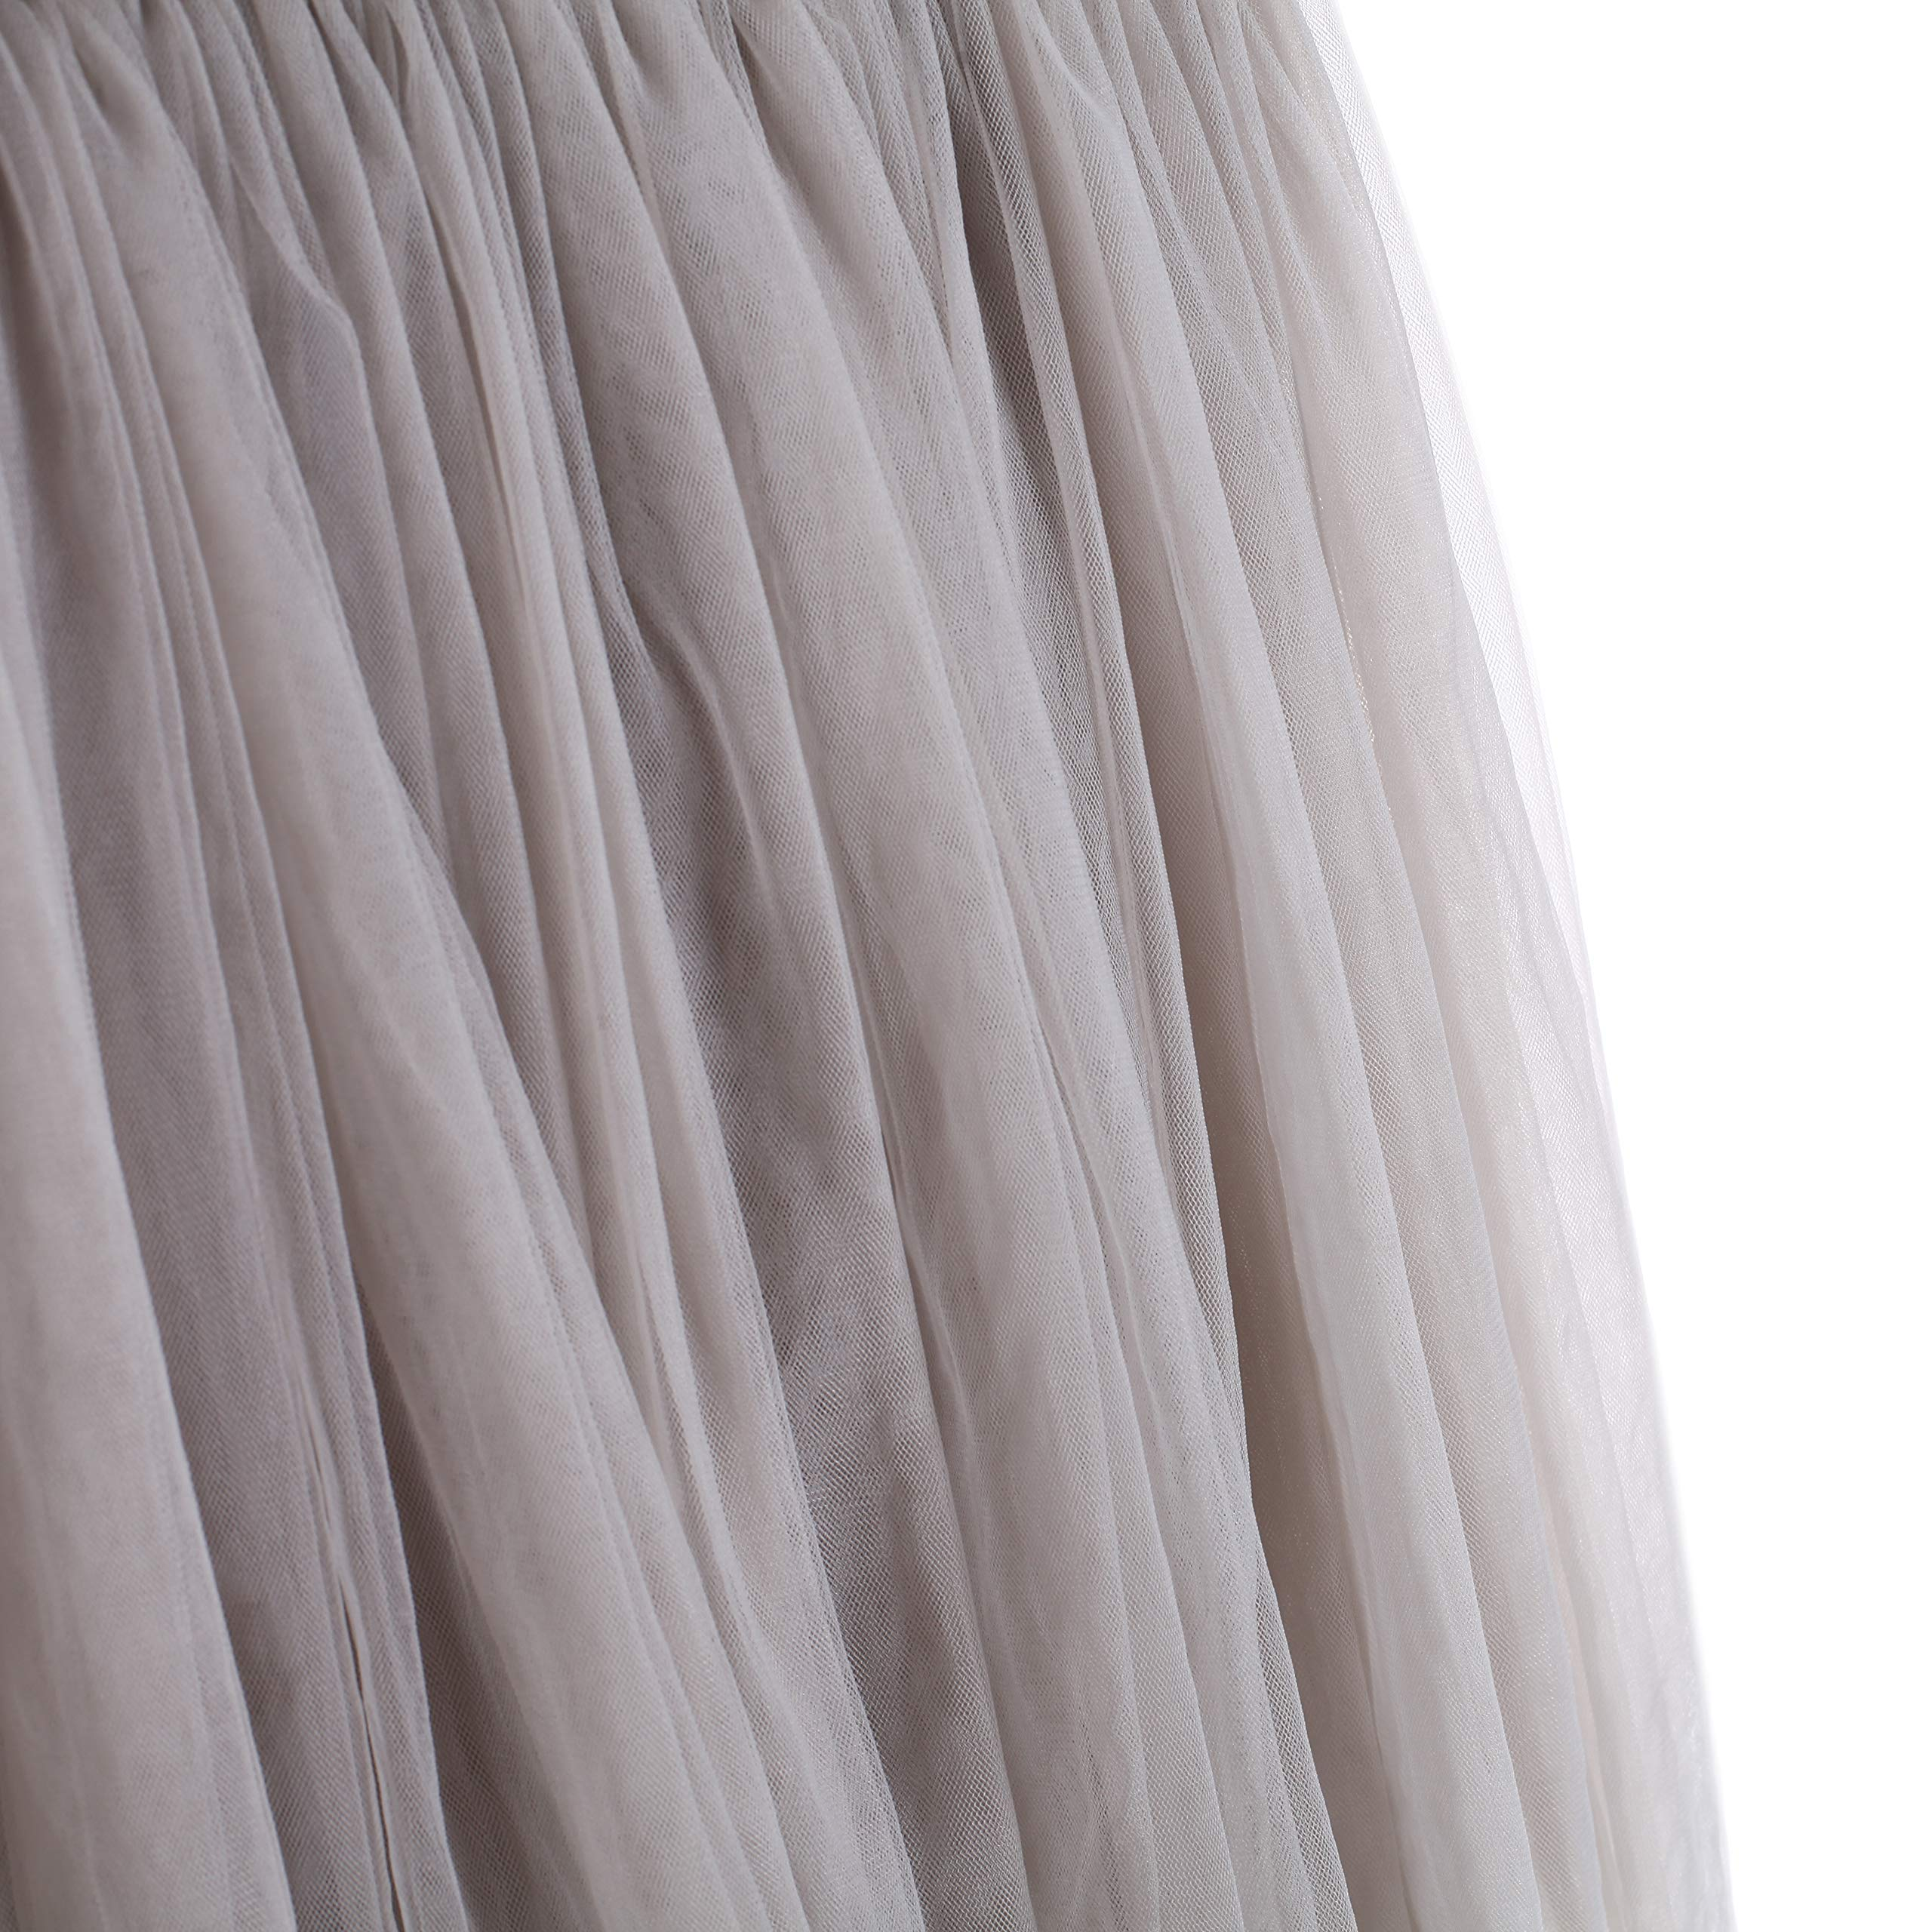 Flofallzique Tulle Tutu Girls Skirts for 1-12 Years Old Dancing Party Toddler Clothes(6, Gray) by Flofallzique (Image #7)